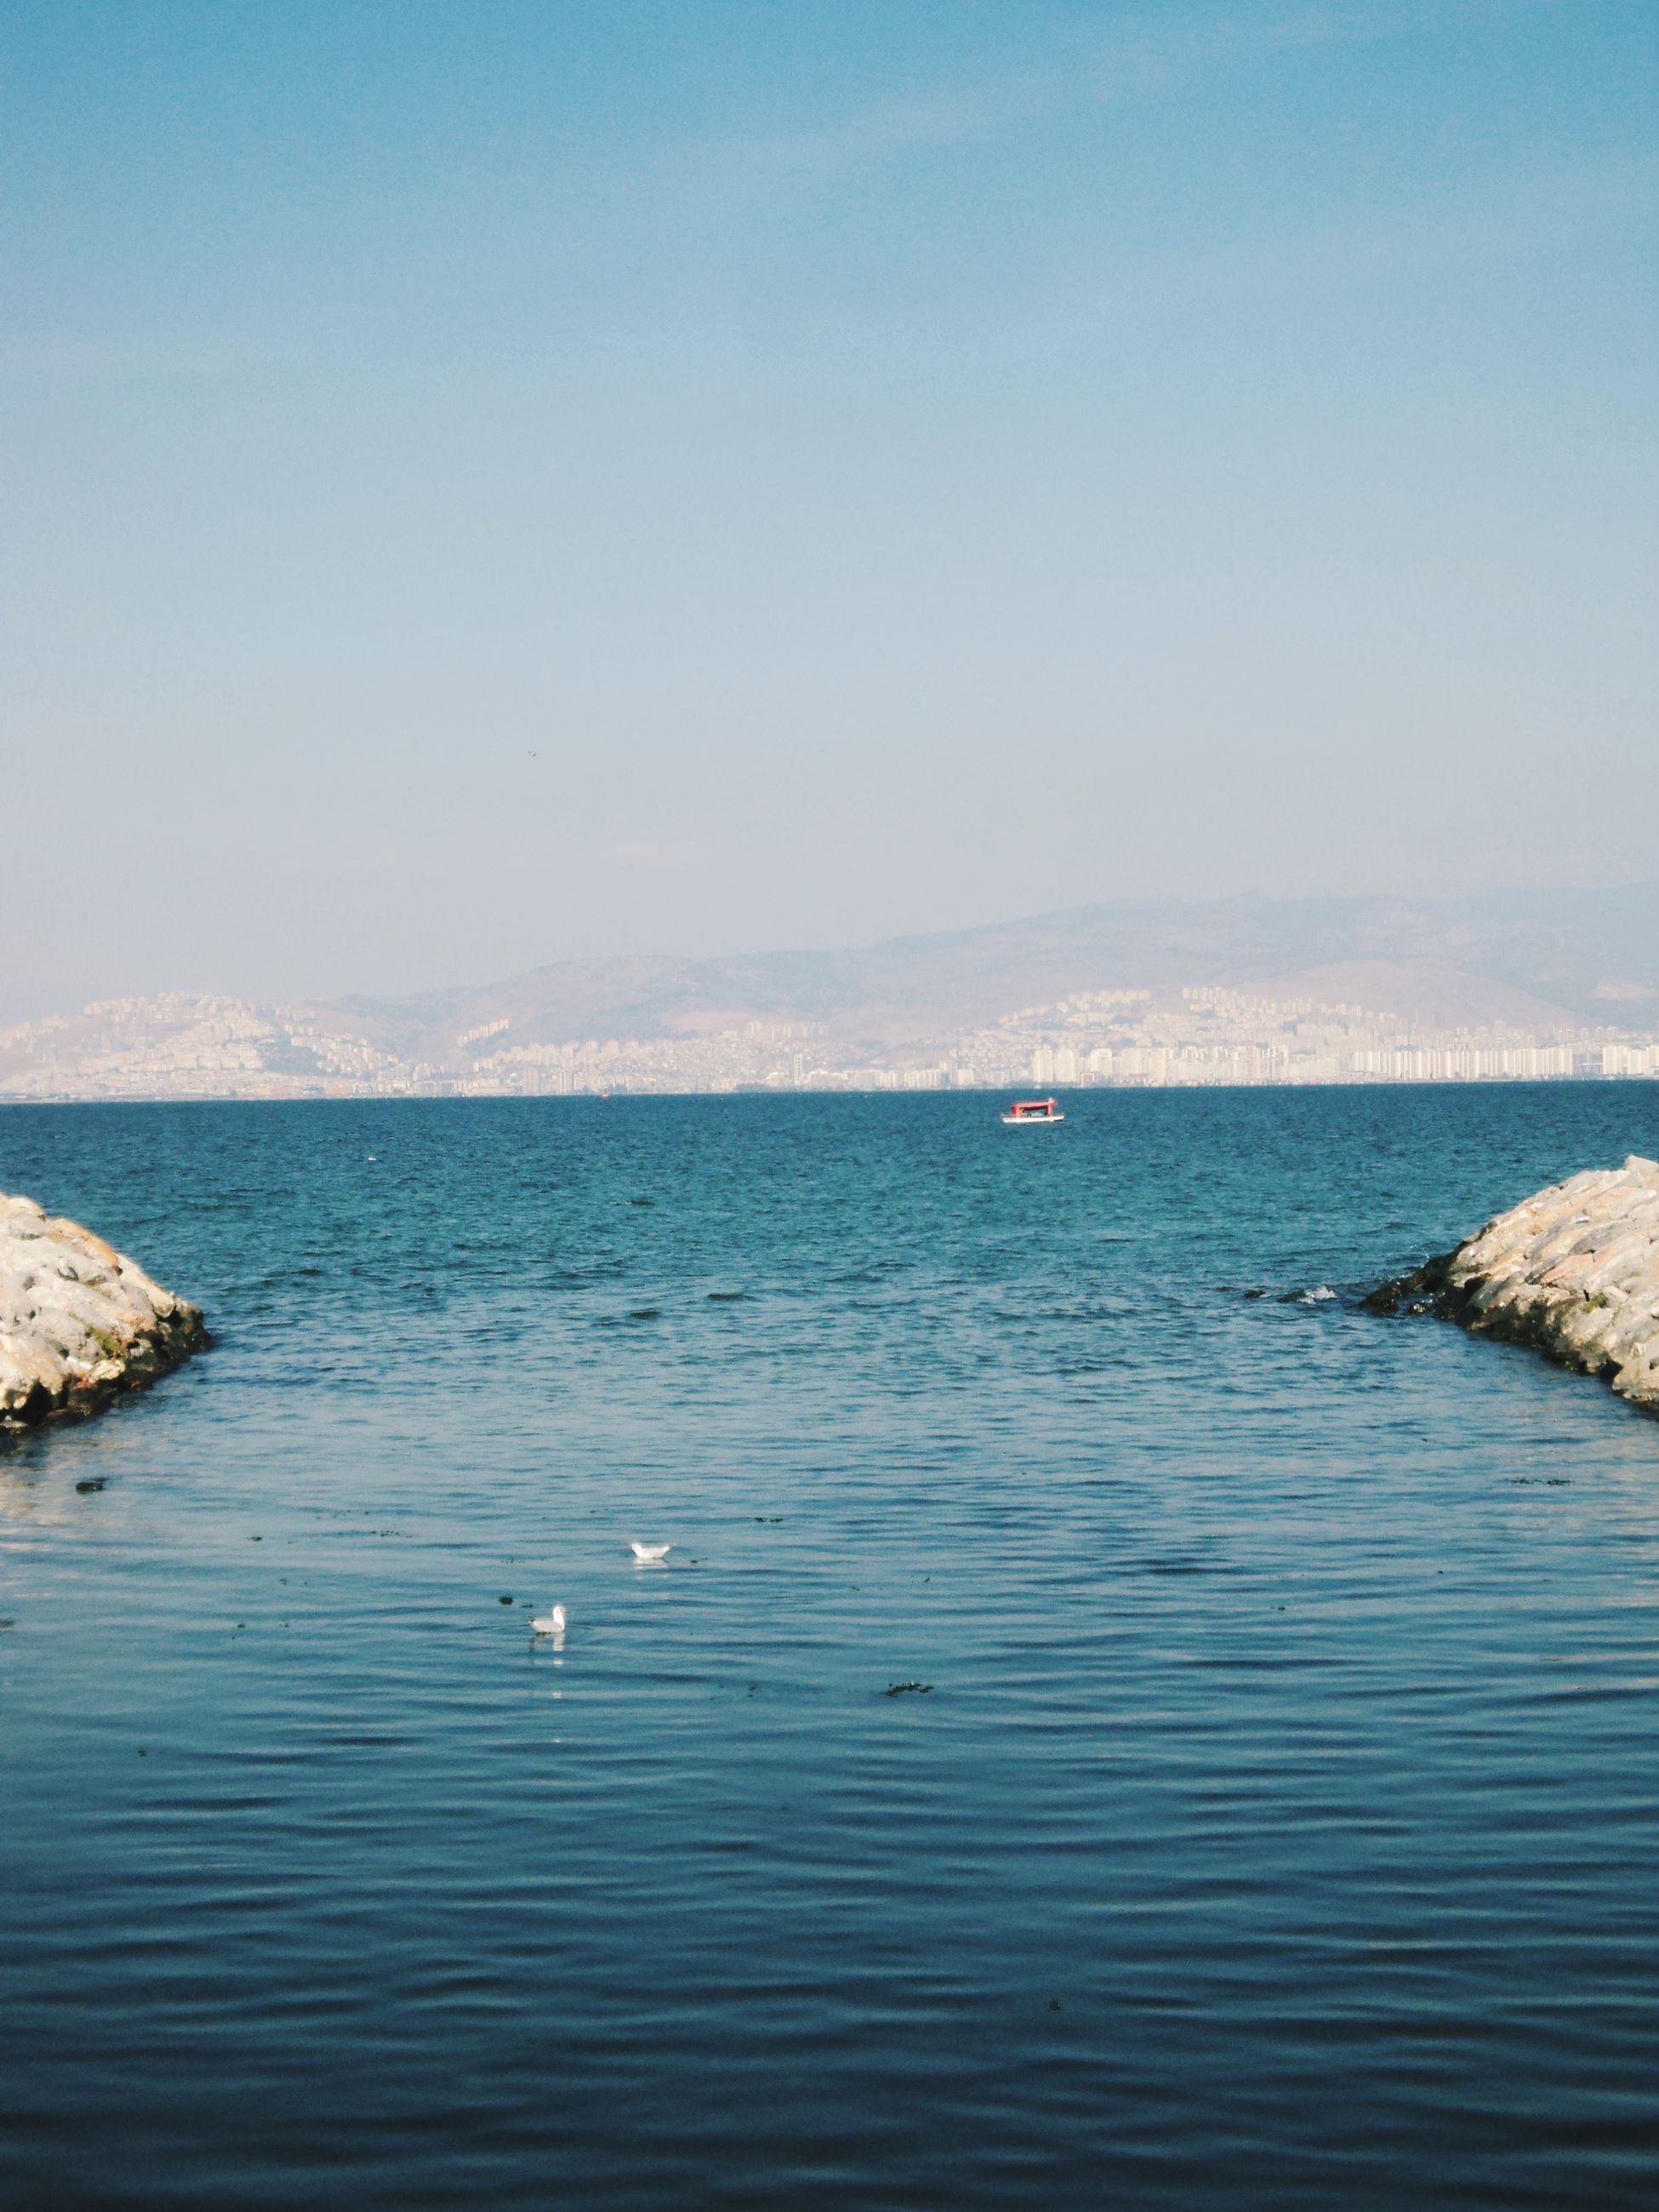 water, sea, tranquil scene, clear sky, scenics, tranquility, copy space, beauty in nature, blue, waterfront, nature, idyllic, rippled, horizon over water, mountain, day, rock - object, outdoors, no people, non-urban scene